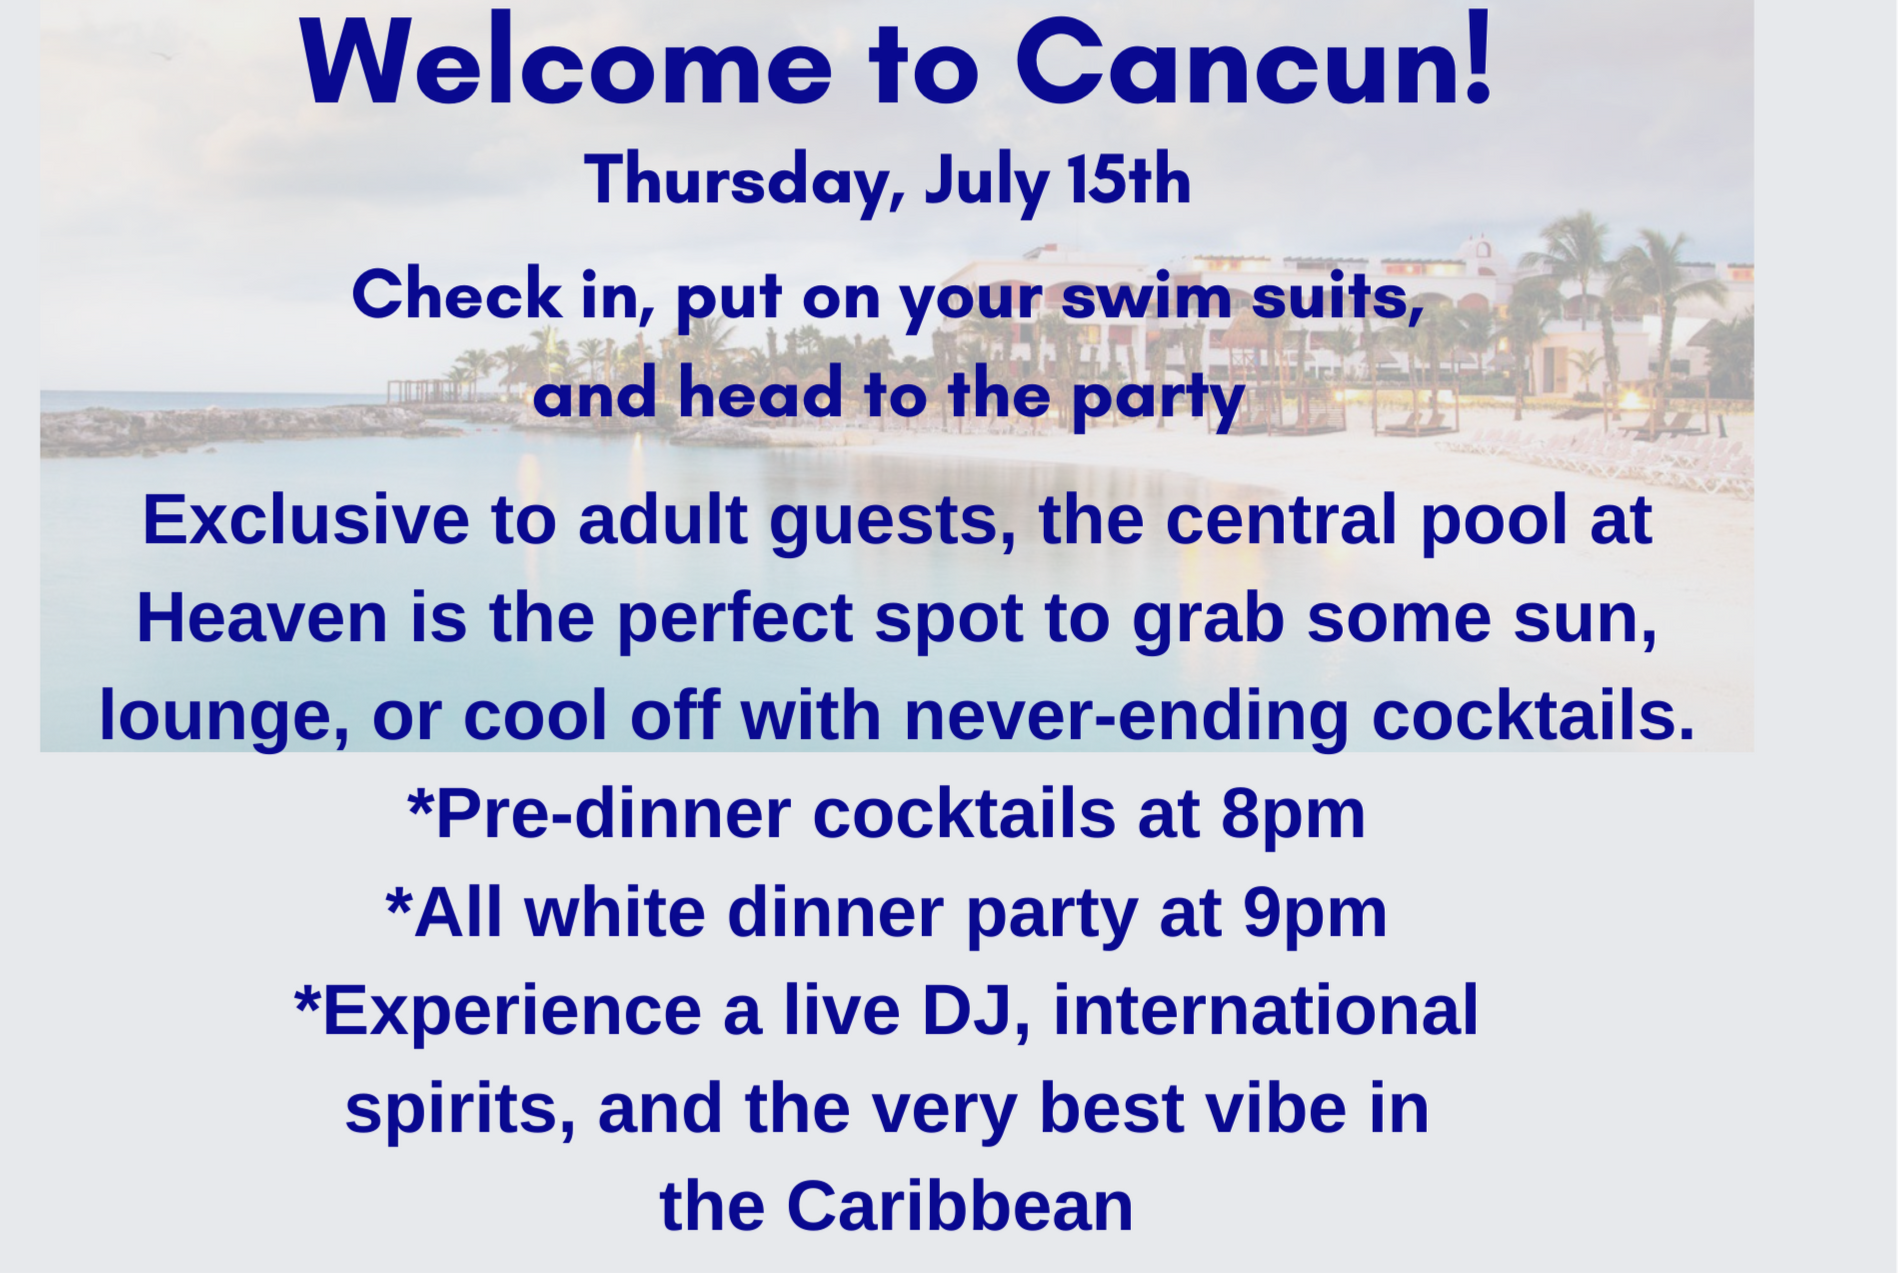 Welcome%2520to%2520Cancun!_edited_edited